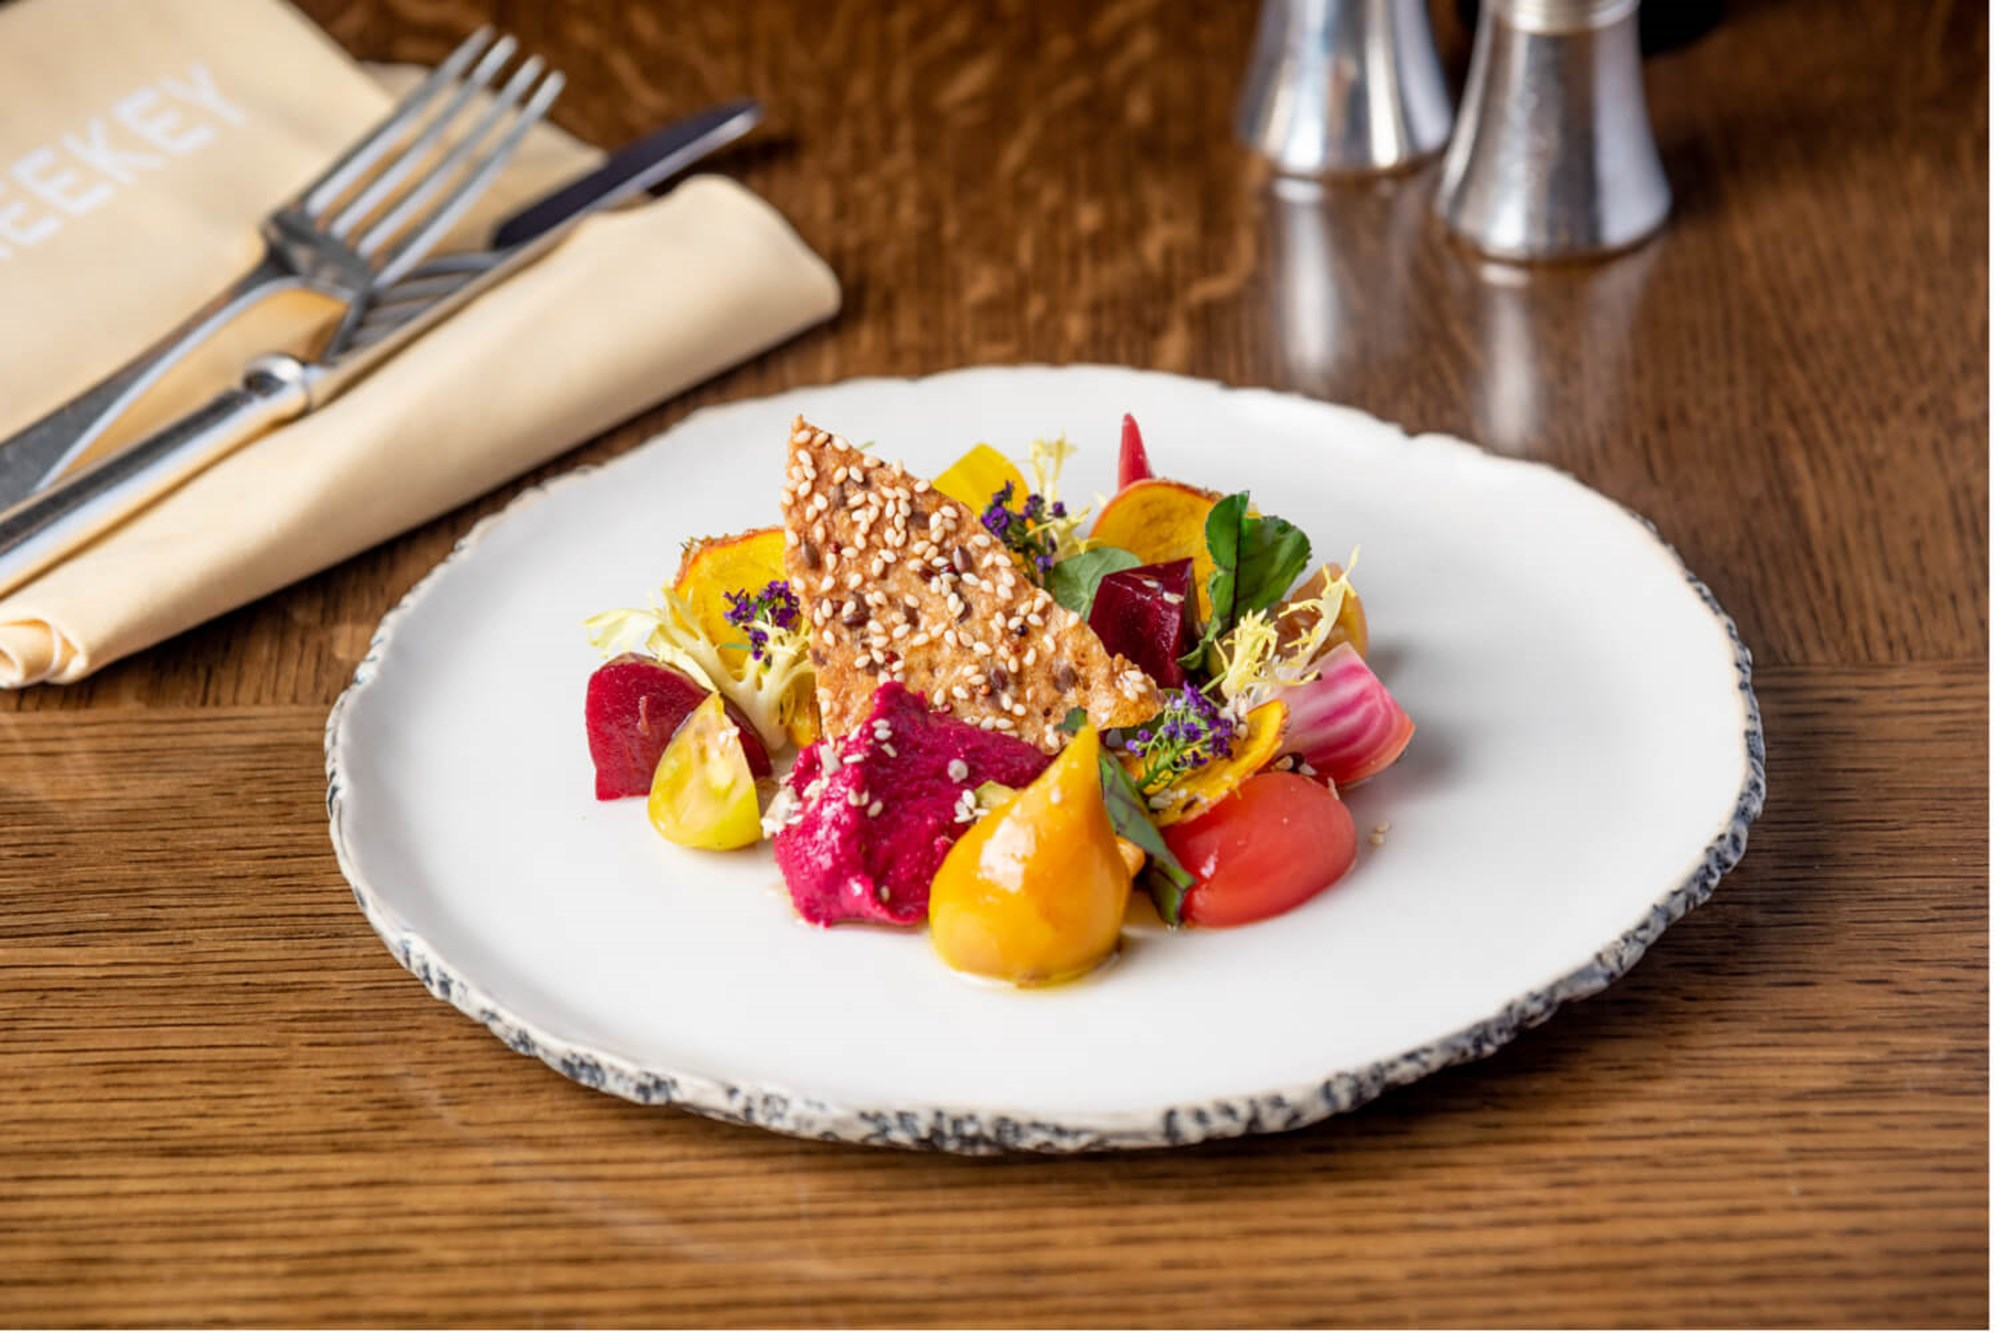 Vegetarian and Vegan dishes available at J Sheekey, an iconic restaurant in London